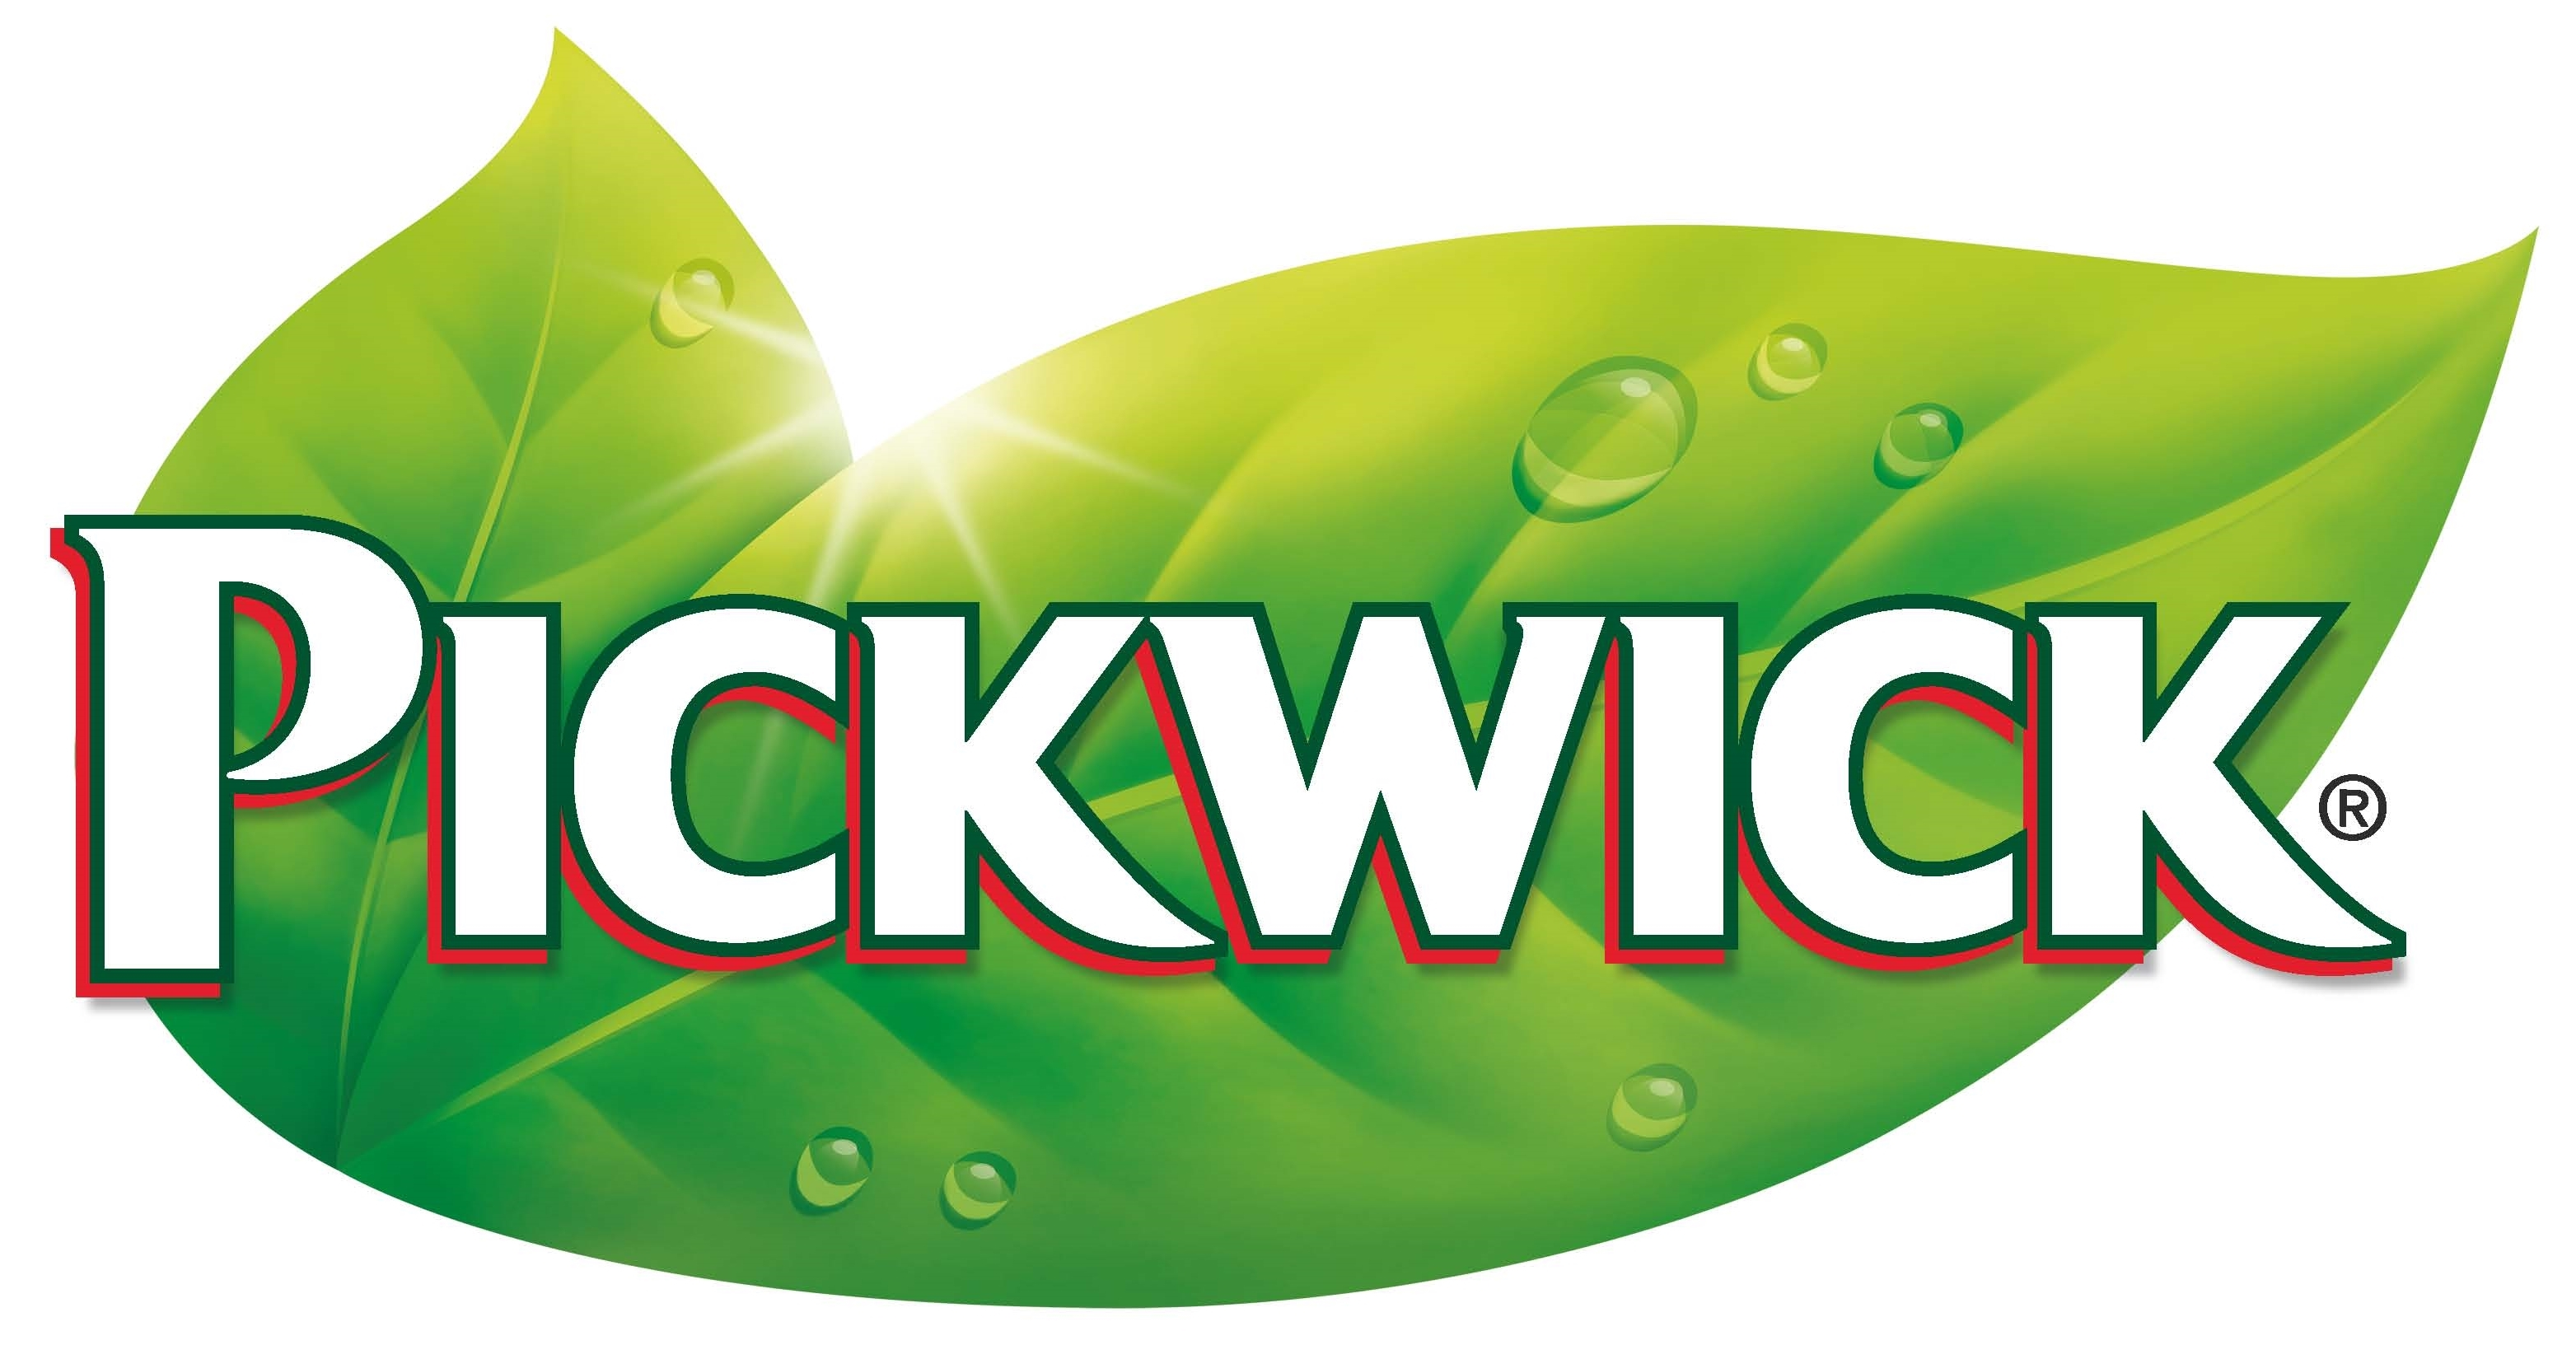 Pickwick Tea logo, logotype